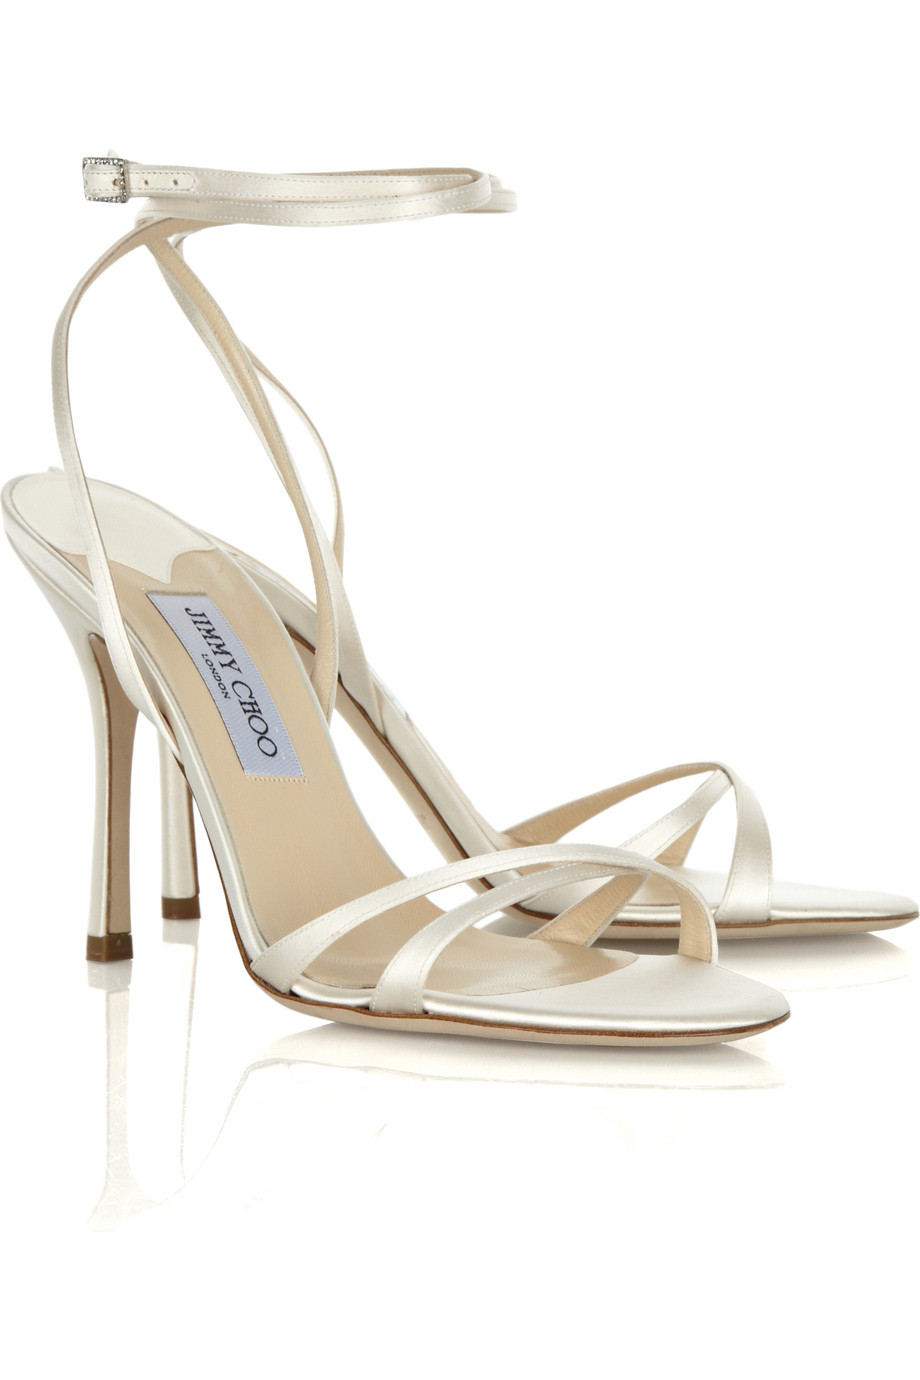 excellent for sale Jimmy Choo Suave Wraparound Sandals buy cheap very cheap new arrival cheap price cheap the cheapest looking for cheap price poAU7tu